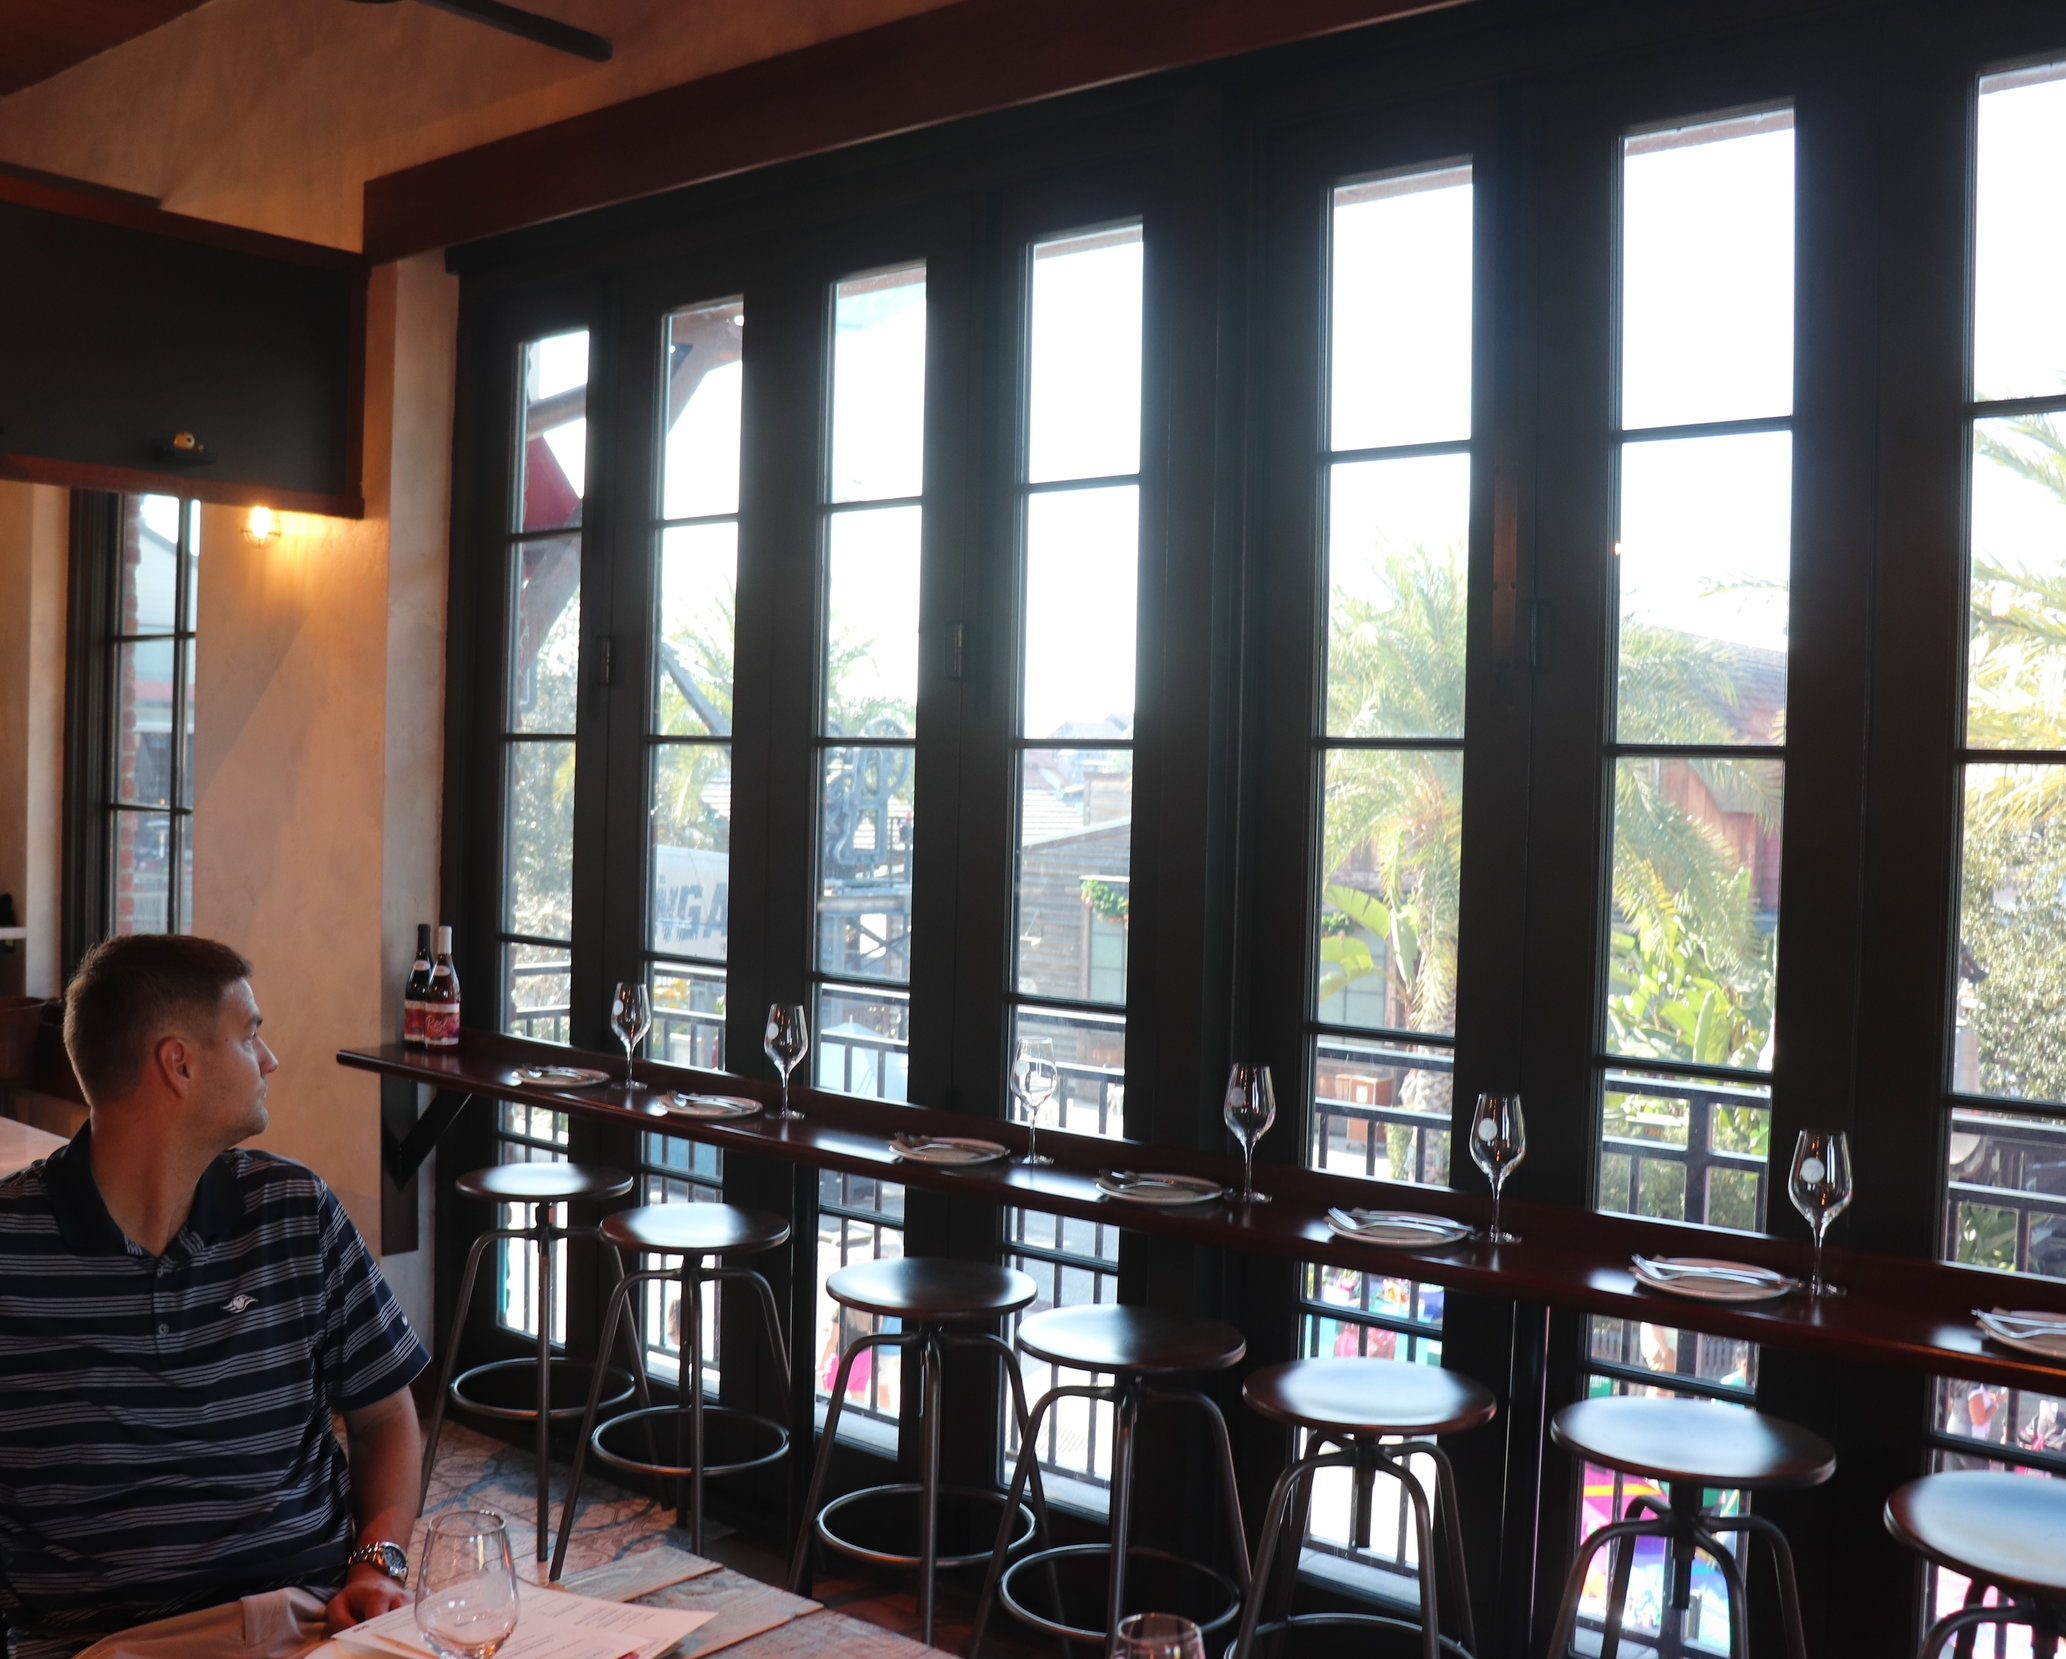 Our table was located near windows overlooking Disney Springs.